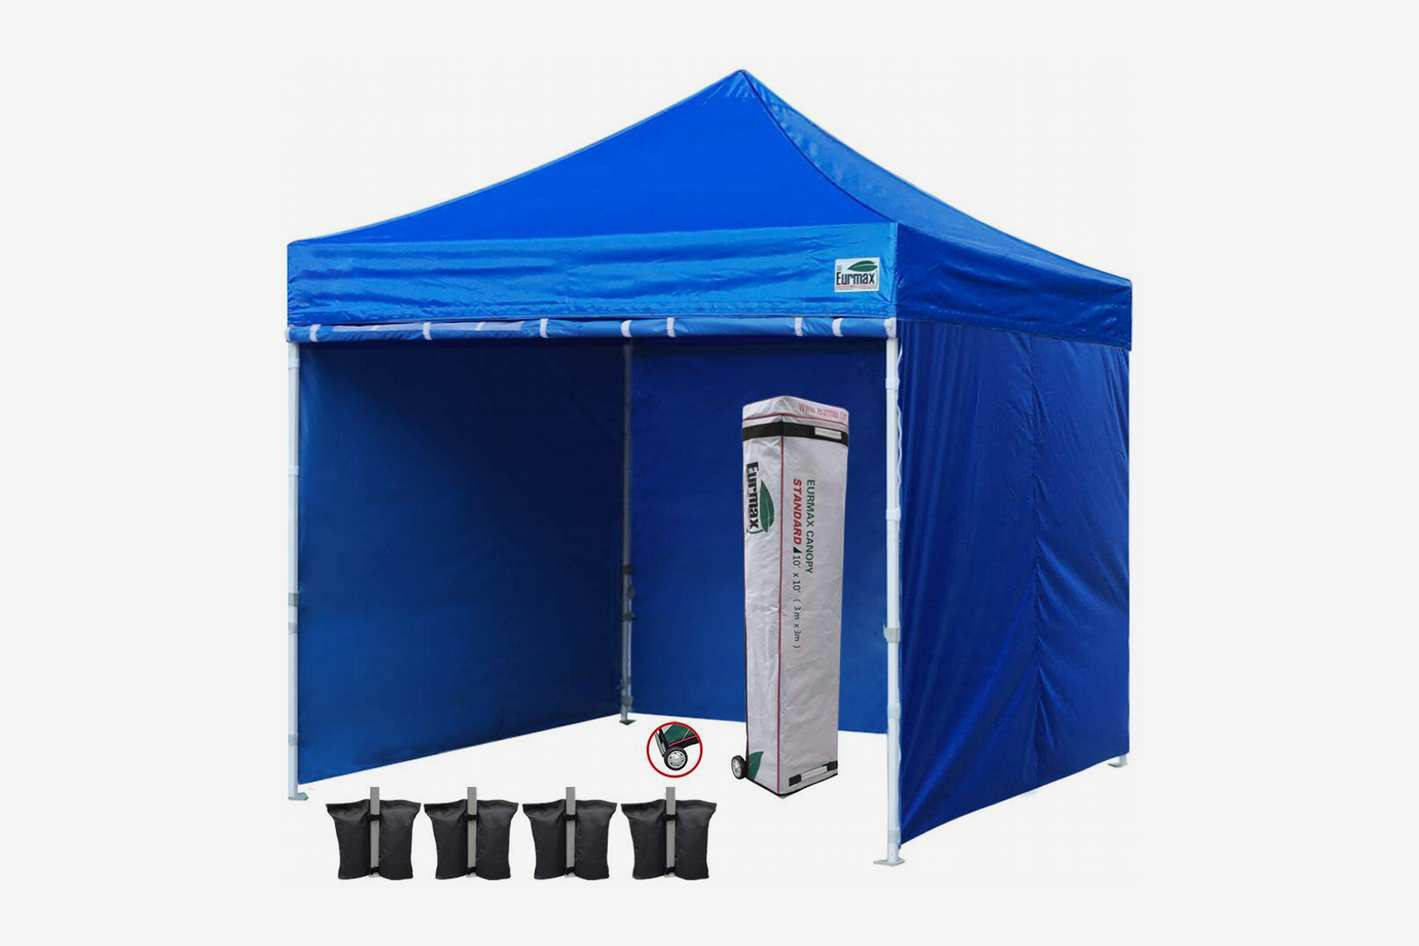 Eurmax Ez Pop-Up Canopy Tent with 4 Removable Side Walls, Roller Bag, and 4 Weighted Sandbags